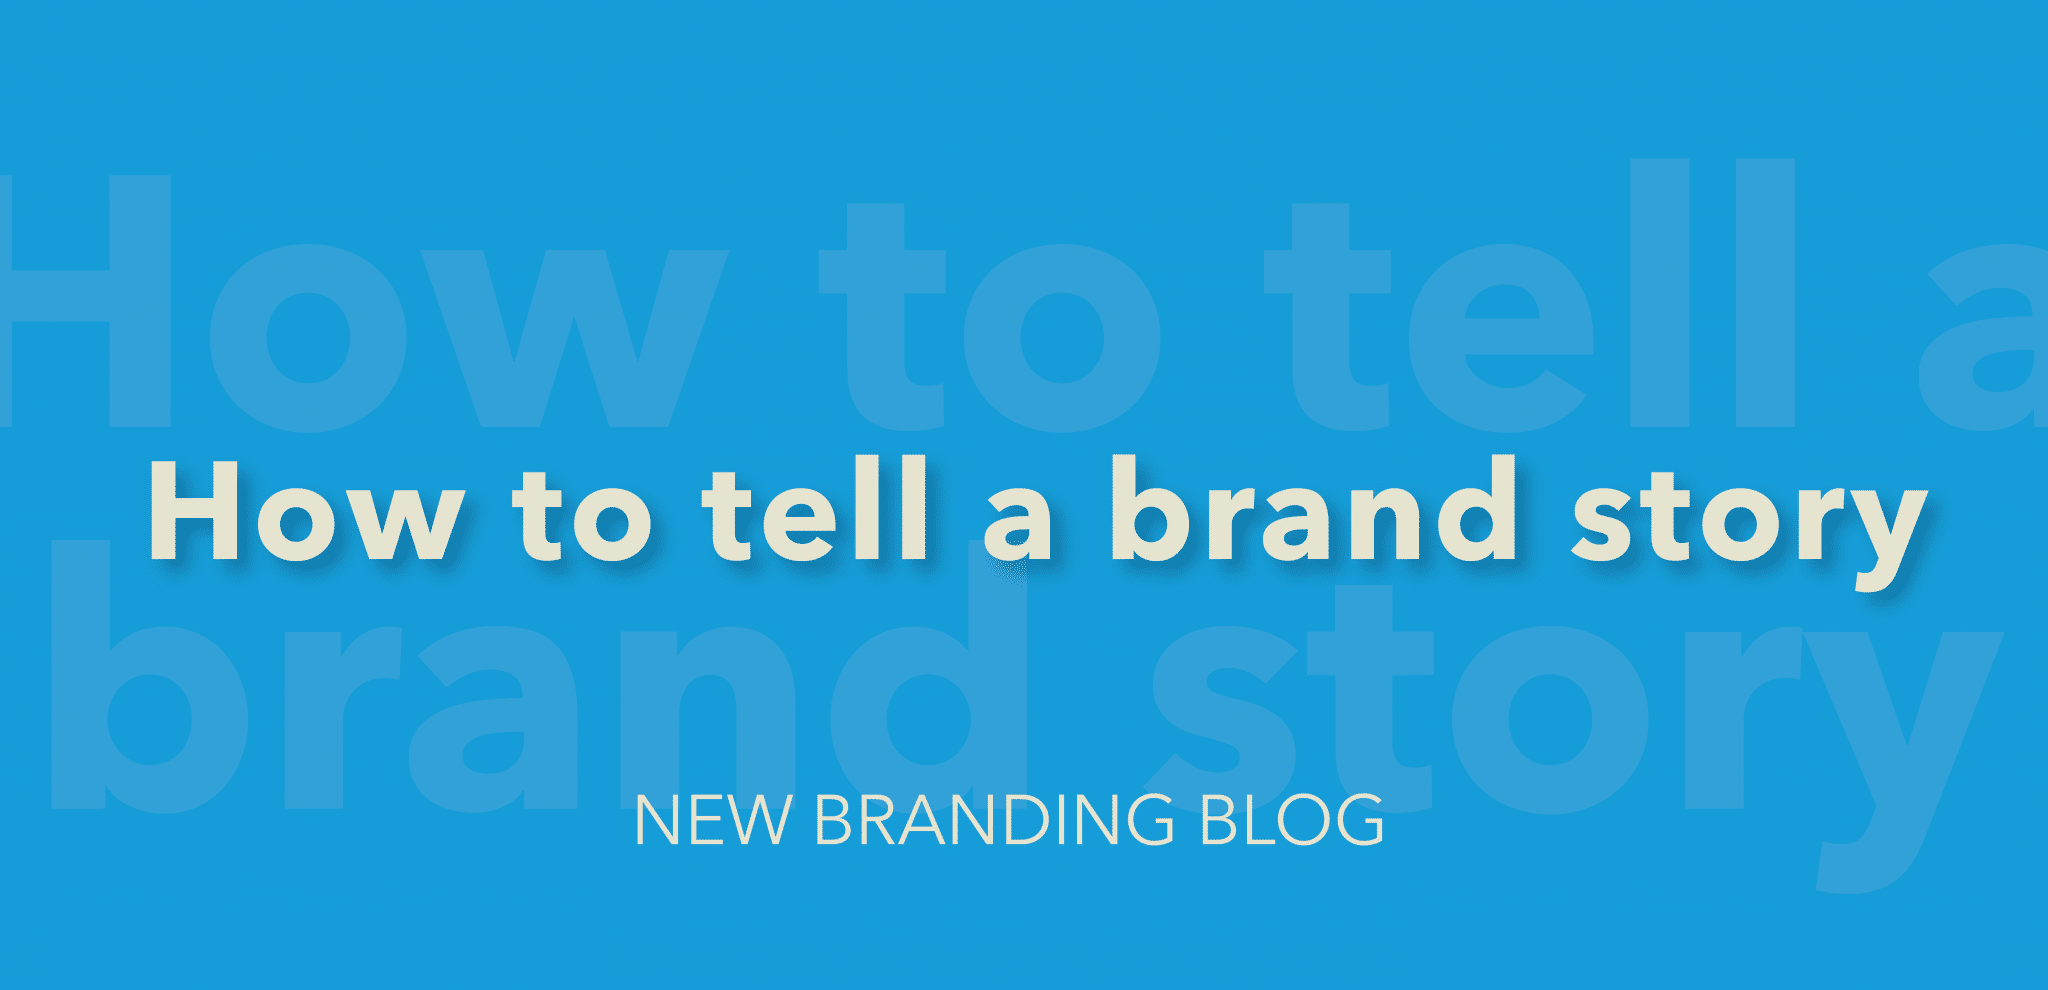 how to tell a brand story